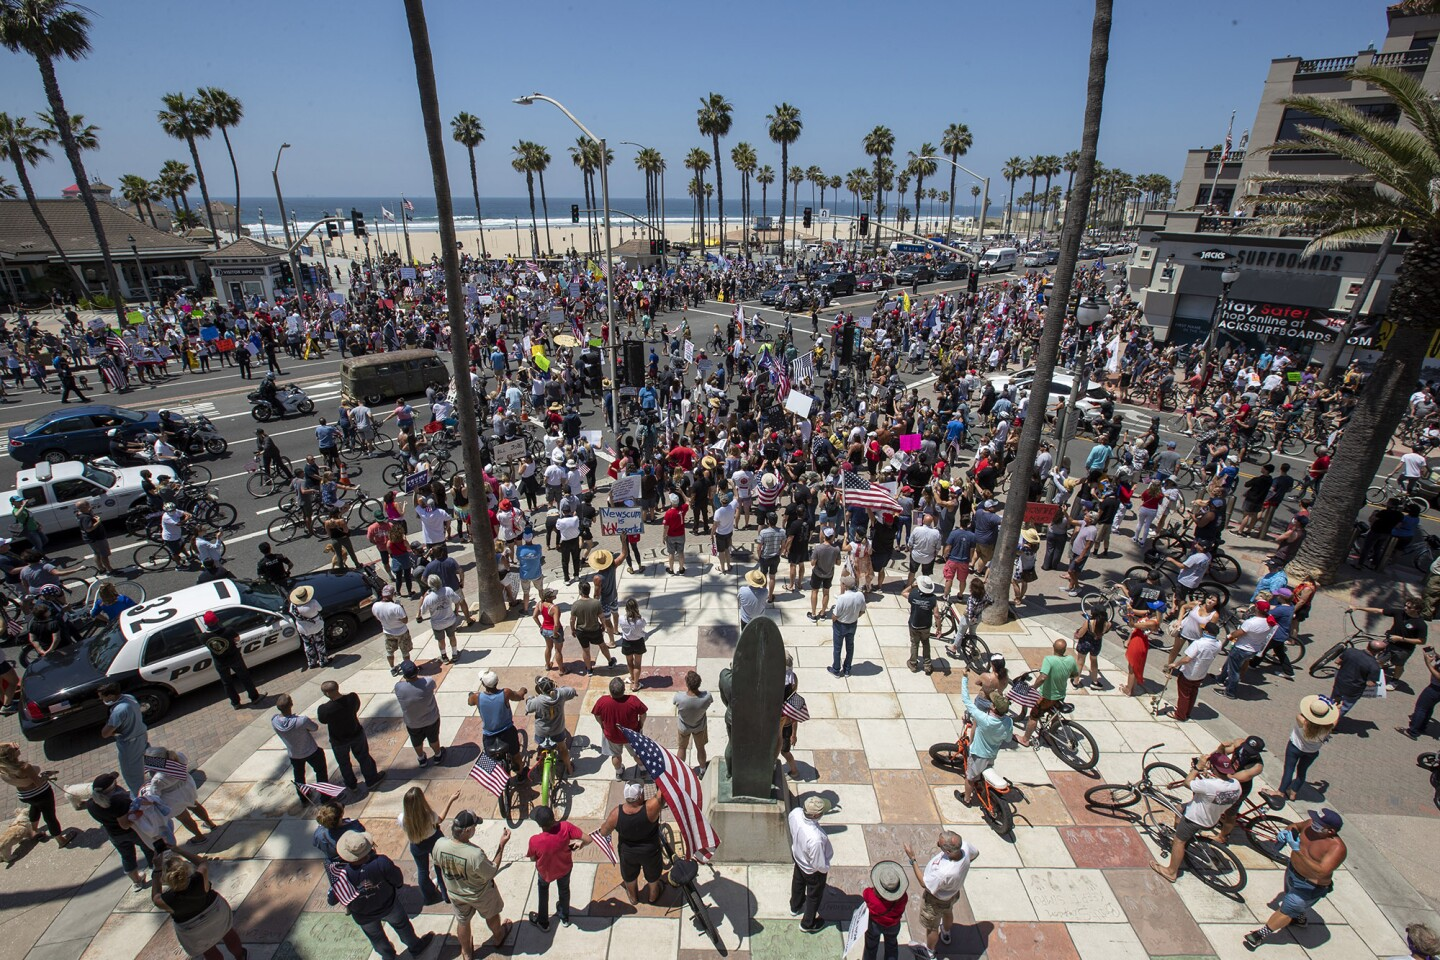 A large crowd gathers during a protest of the governor's stay-at-home orders on Main Street and Pacific Coast Highway in Huntington Beach on Friday, May 1.